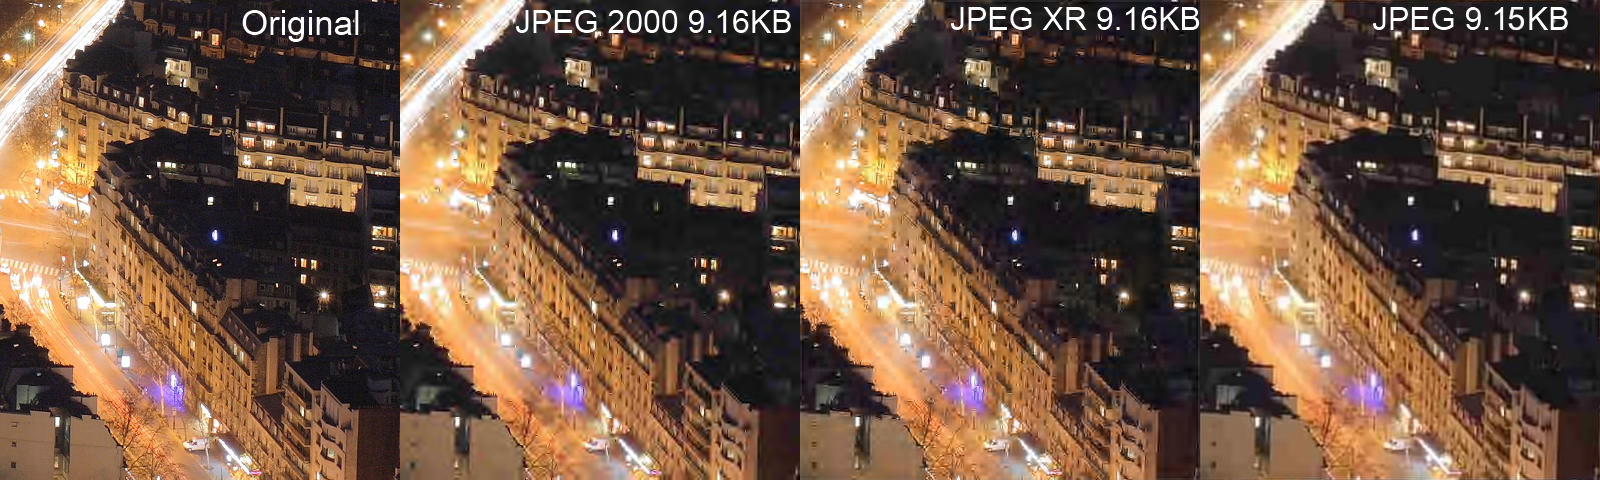 Image result for compression pixels comparison